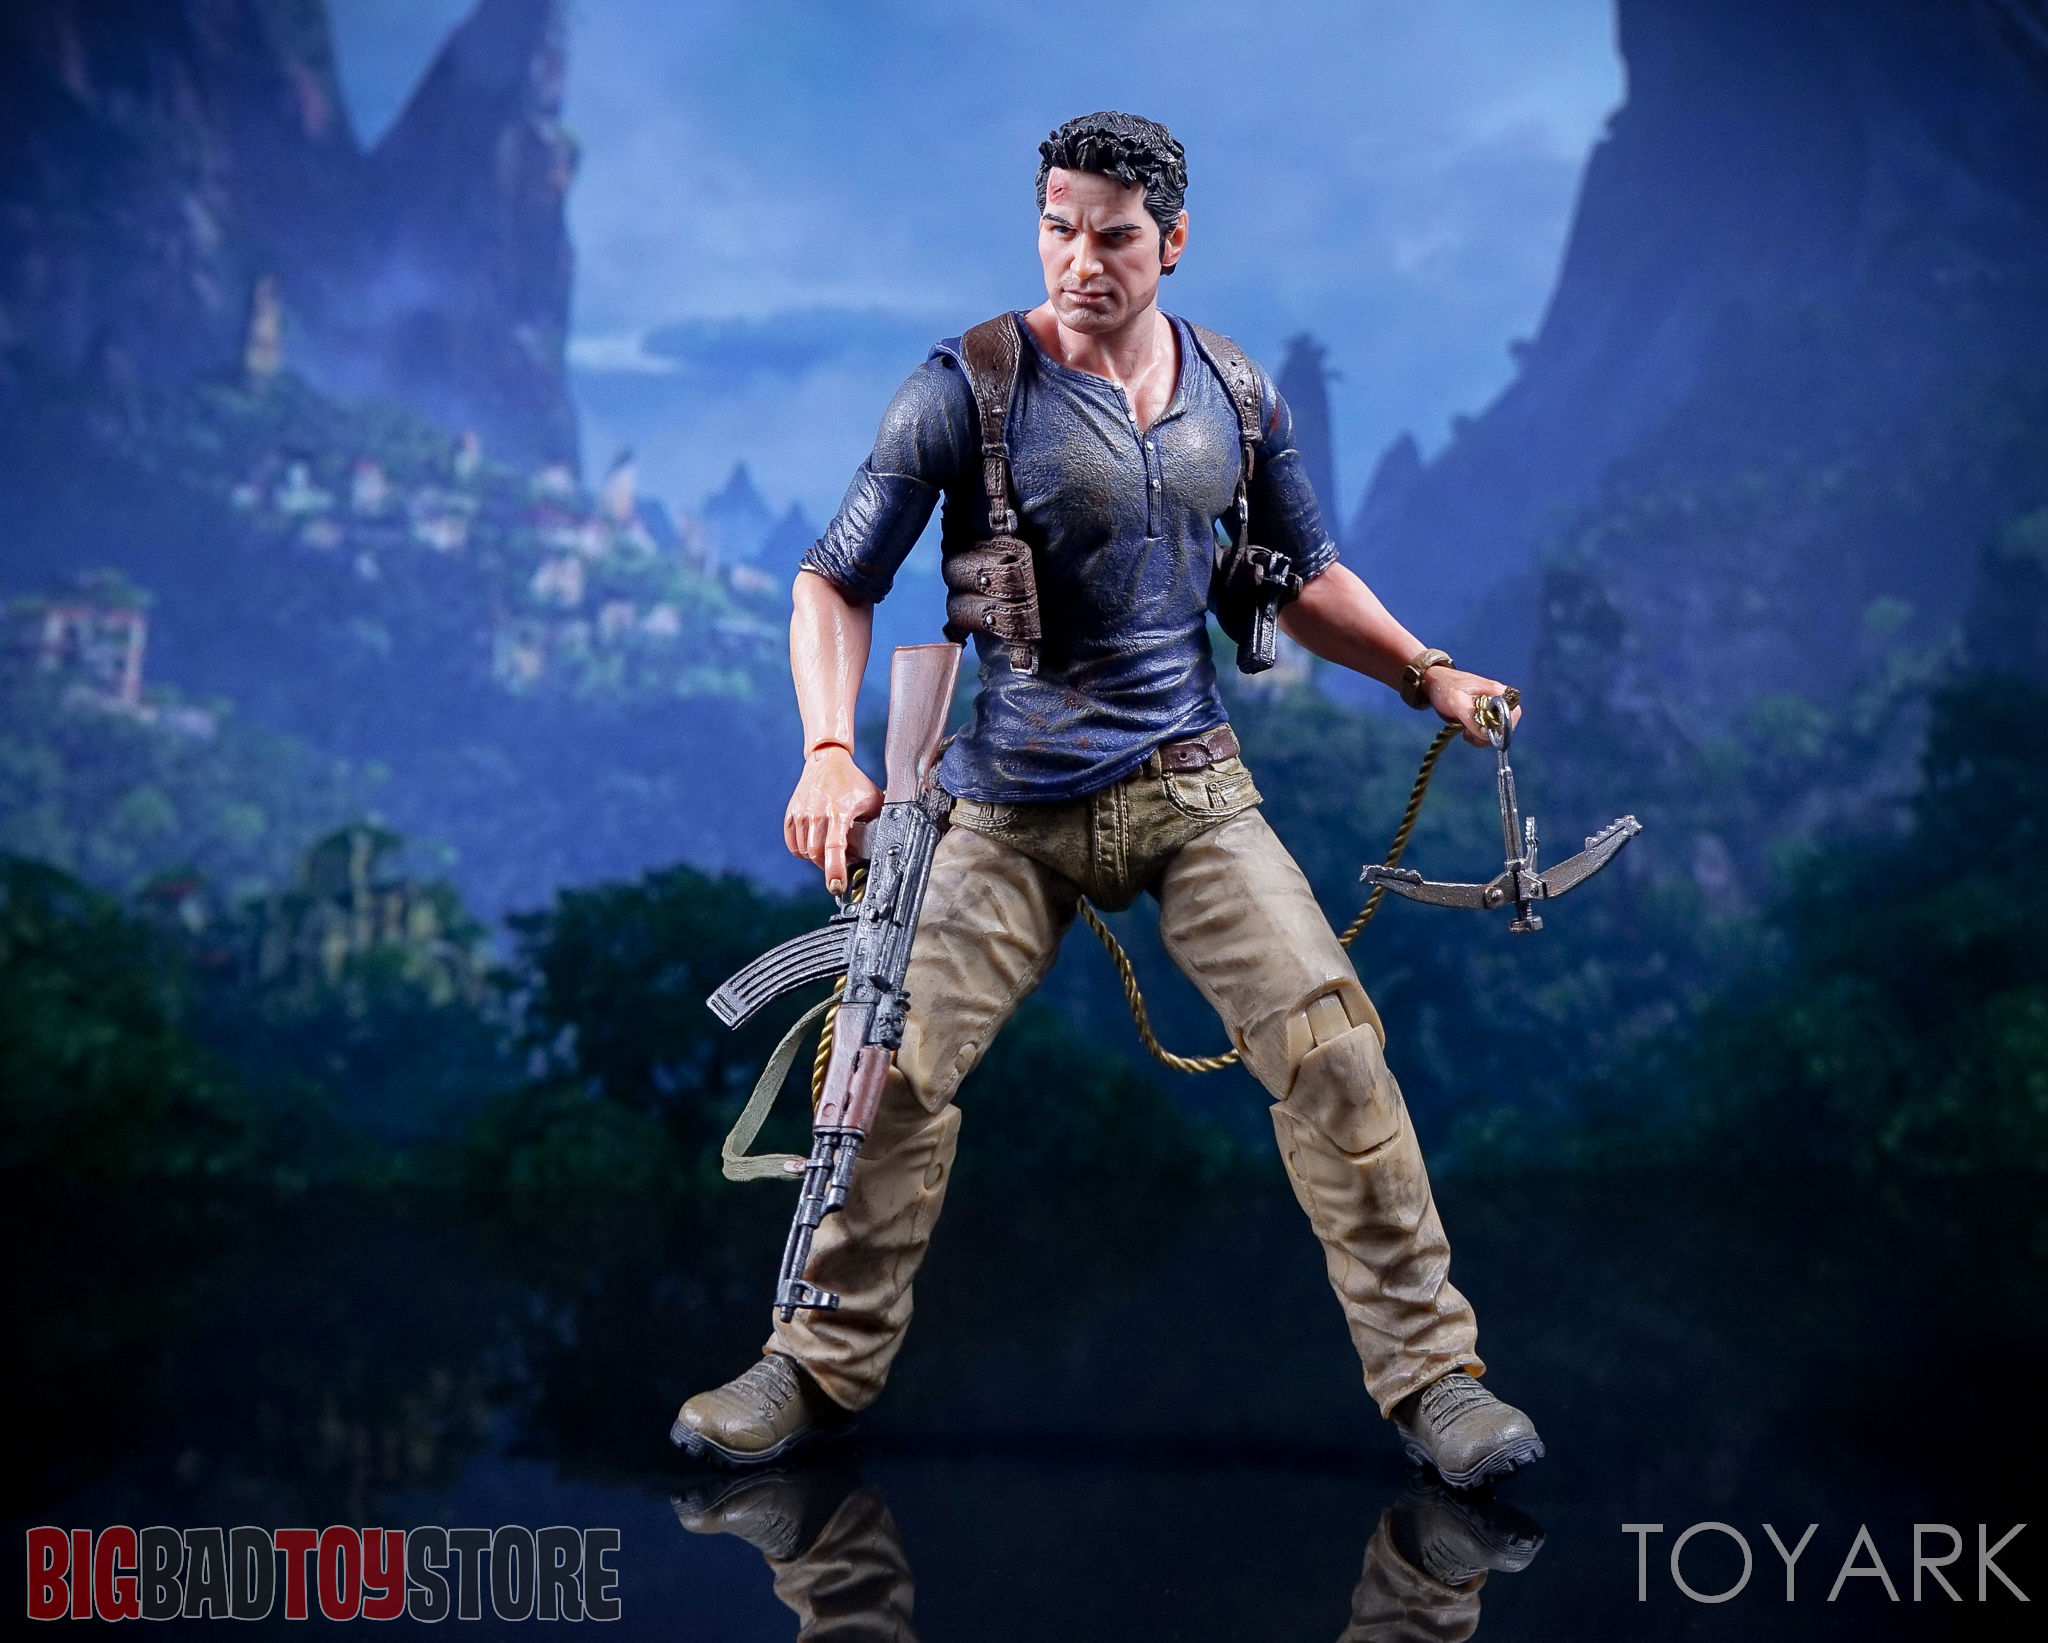 http://news.toyark.com/wp-content/uploads/sites/4/2016/09/NECA-Uncharted-4-Nathan-Drake-048.jpg